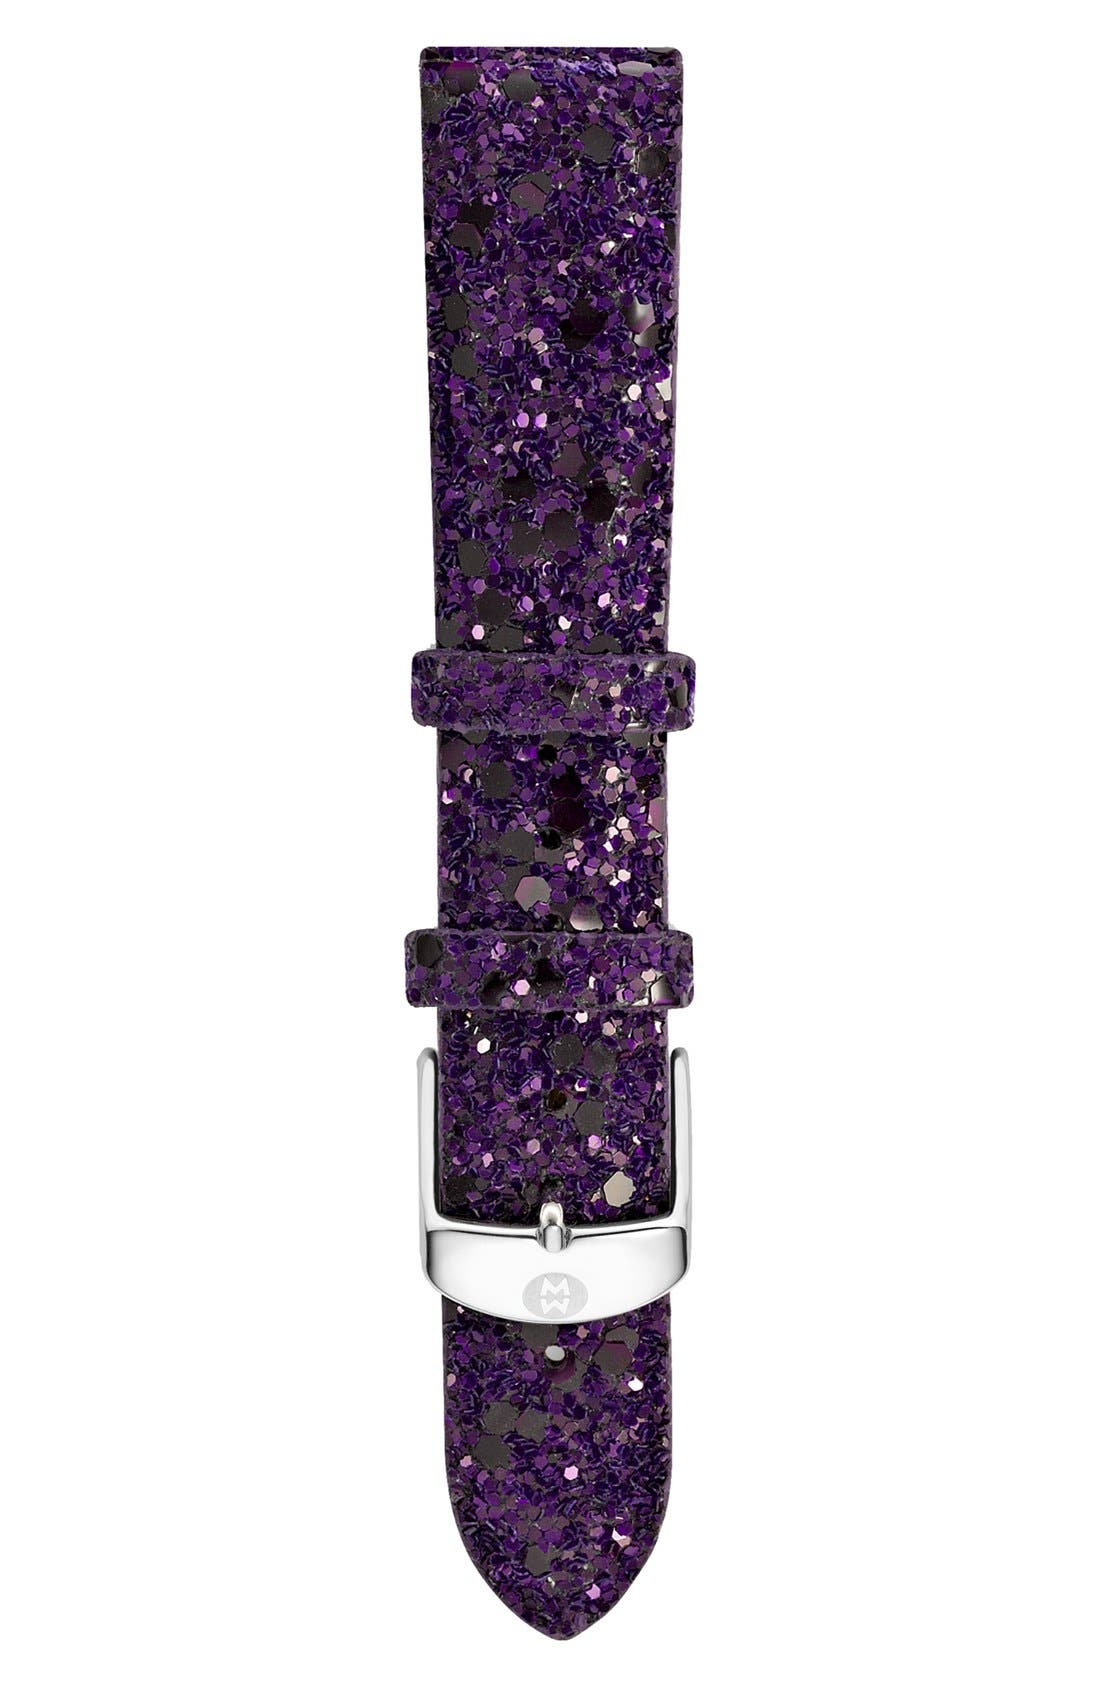 Alternate Image 1 Selected - MICHELE 18mm Glitter Watch Strap